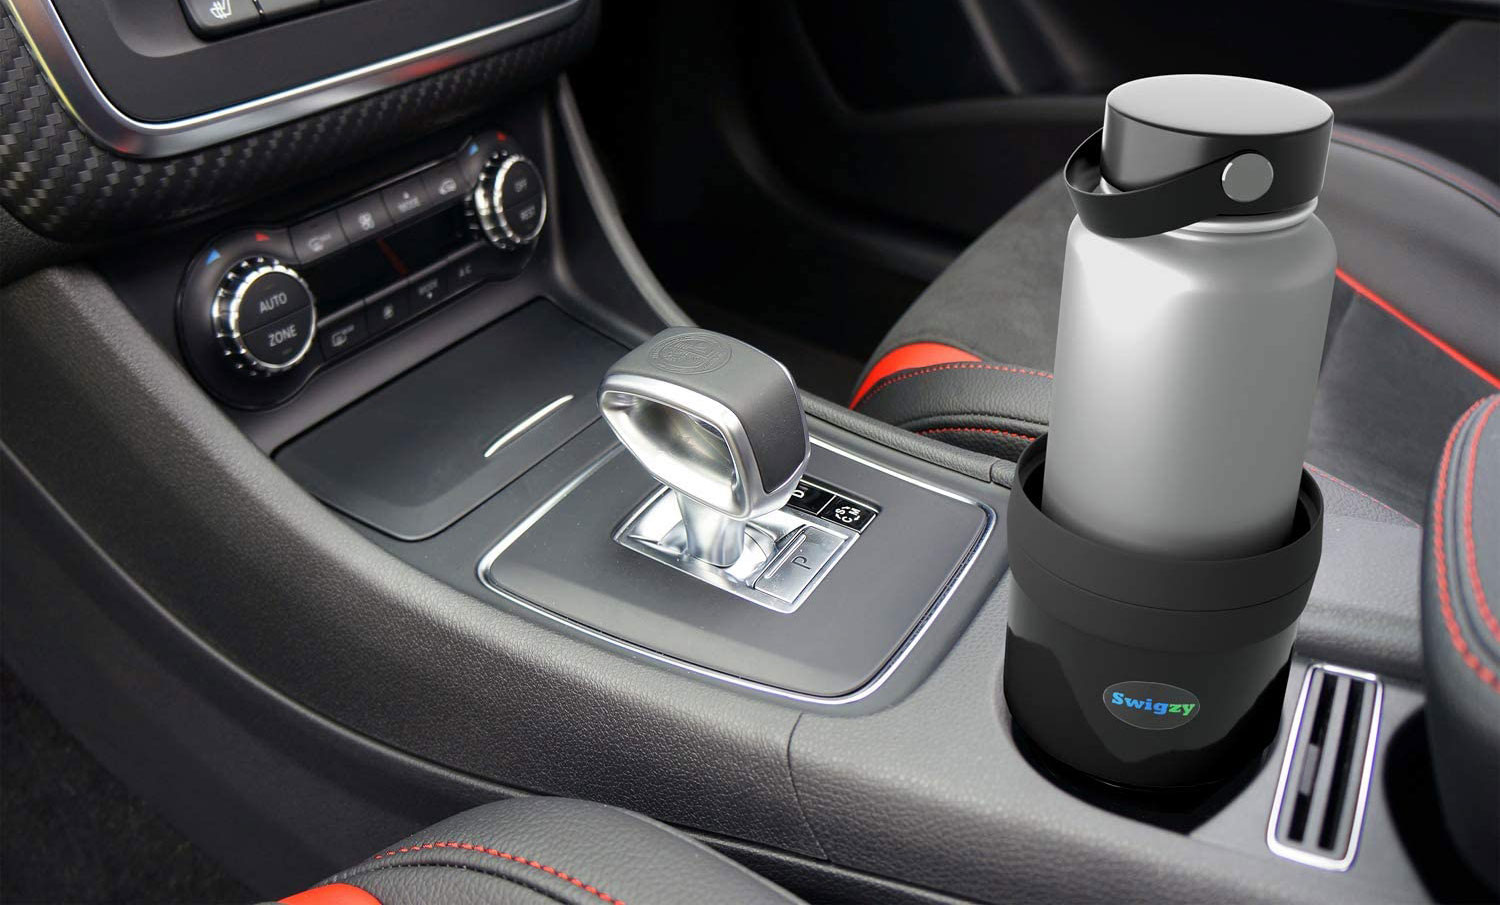 Swigzy-Car-Cup-Holder-Expander-Adapter